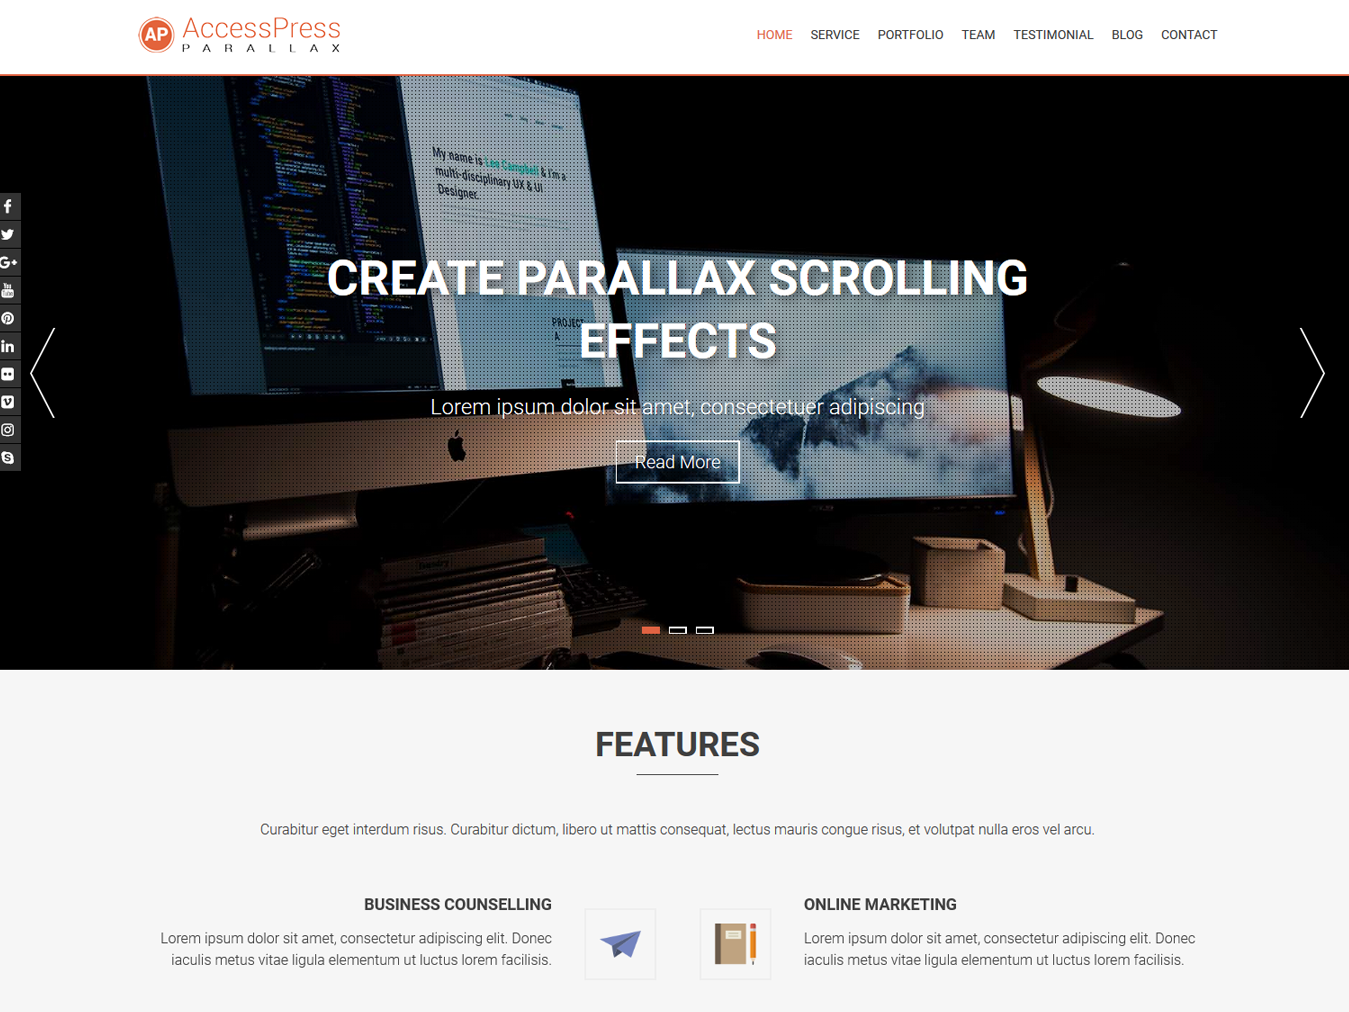 Accesspress Parallax screenshot